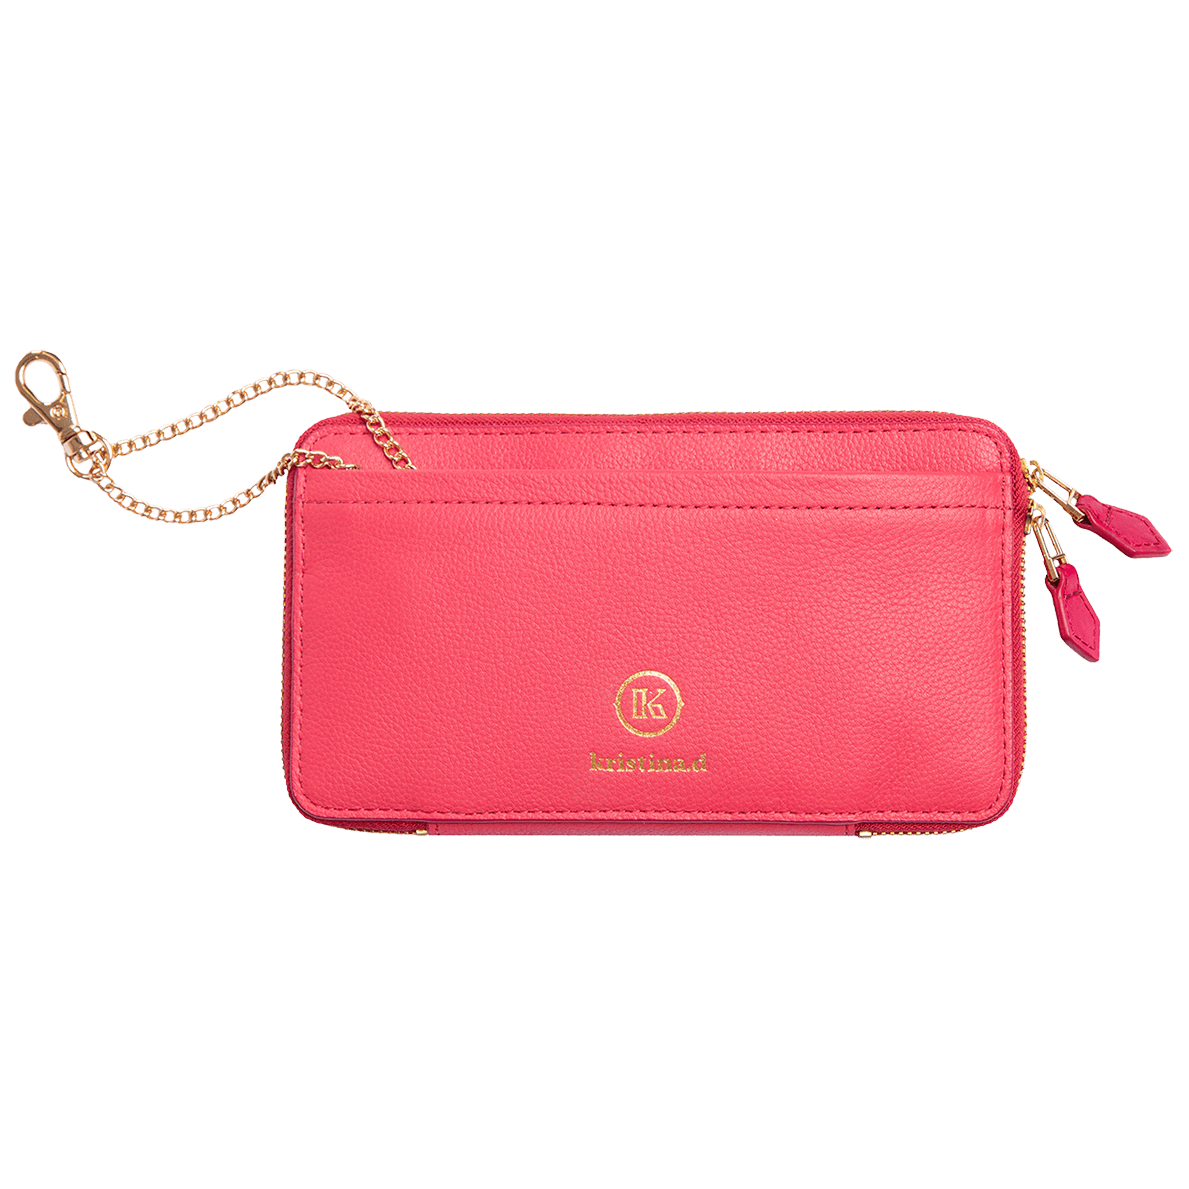 Front view of kristina.d luxury pink leather JULIAN Belt Bag Convertible Wallet with gold chain